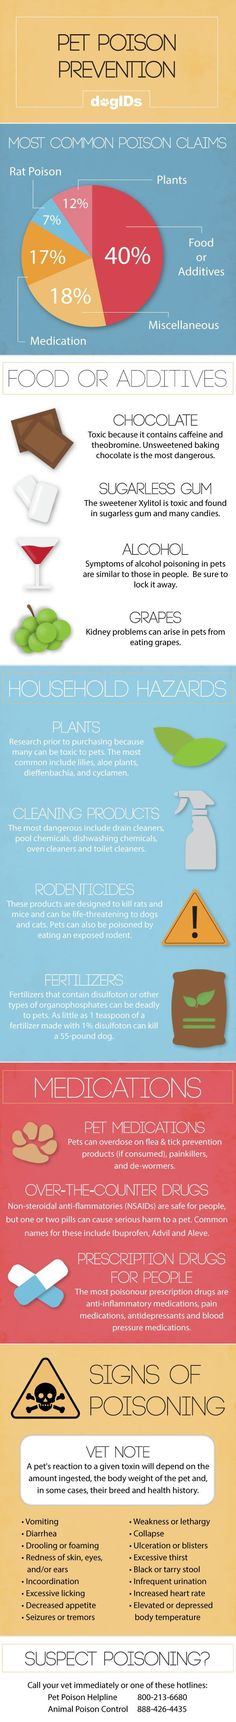 Pet Poison Prevention Infographic